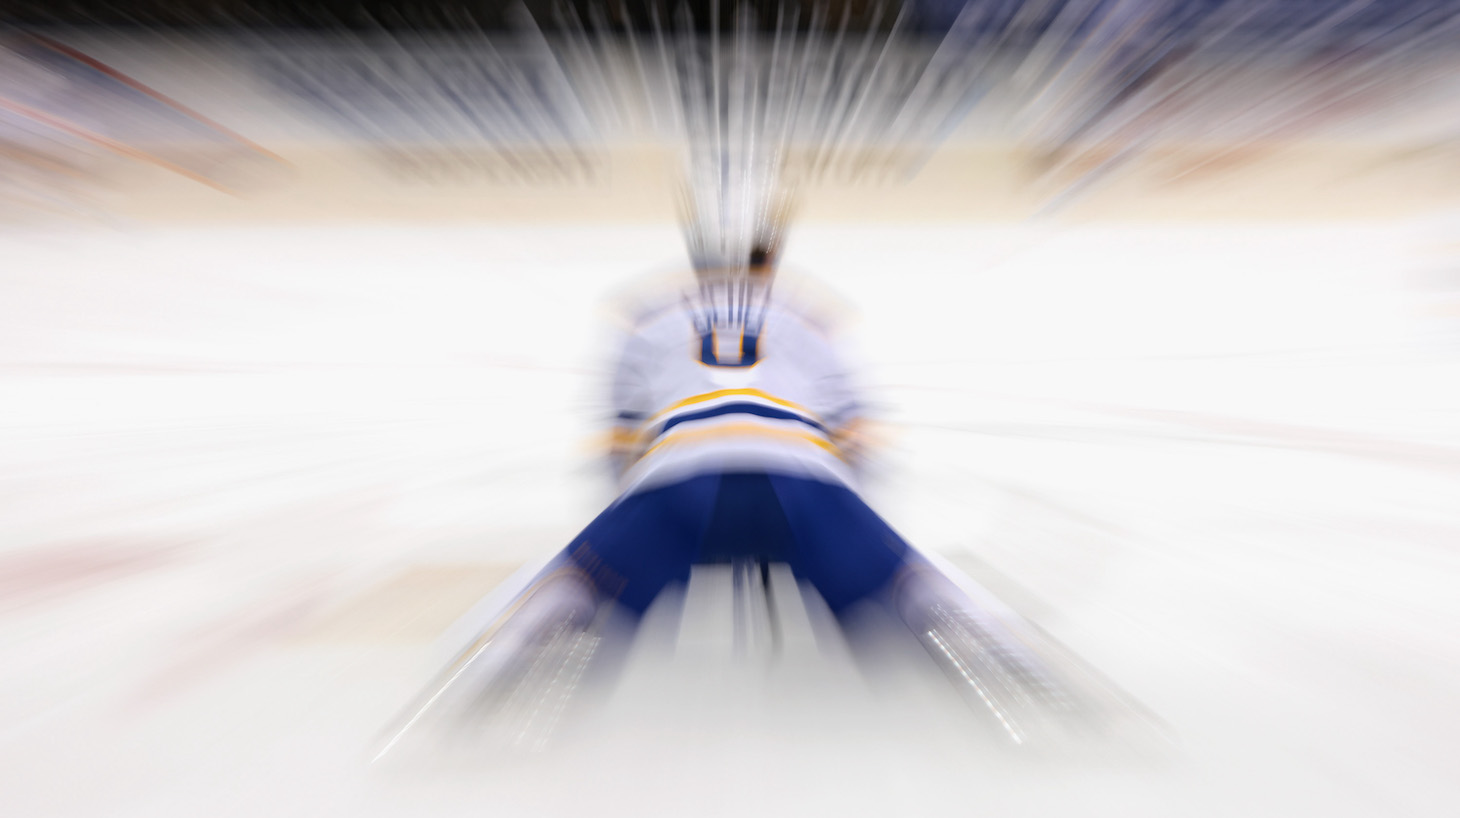 NEW YORK, NEW YORK - MARCH 02: Jack Eichel #9 of the Buffalo Sabres stretches in warm-ups prior to the game against the New York Rangers at Madison Square Garden on March 02, 2021 in New York City. (Photo by Bruce Bennett/Getty Images)